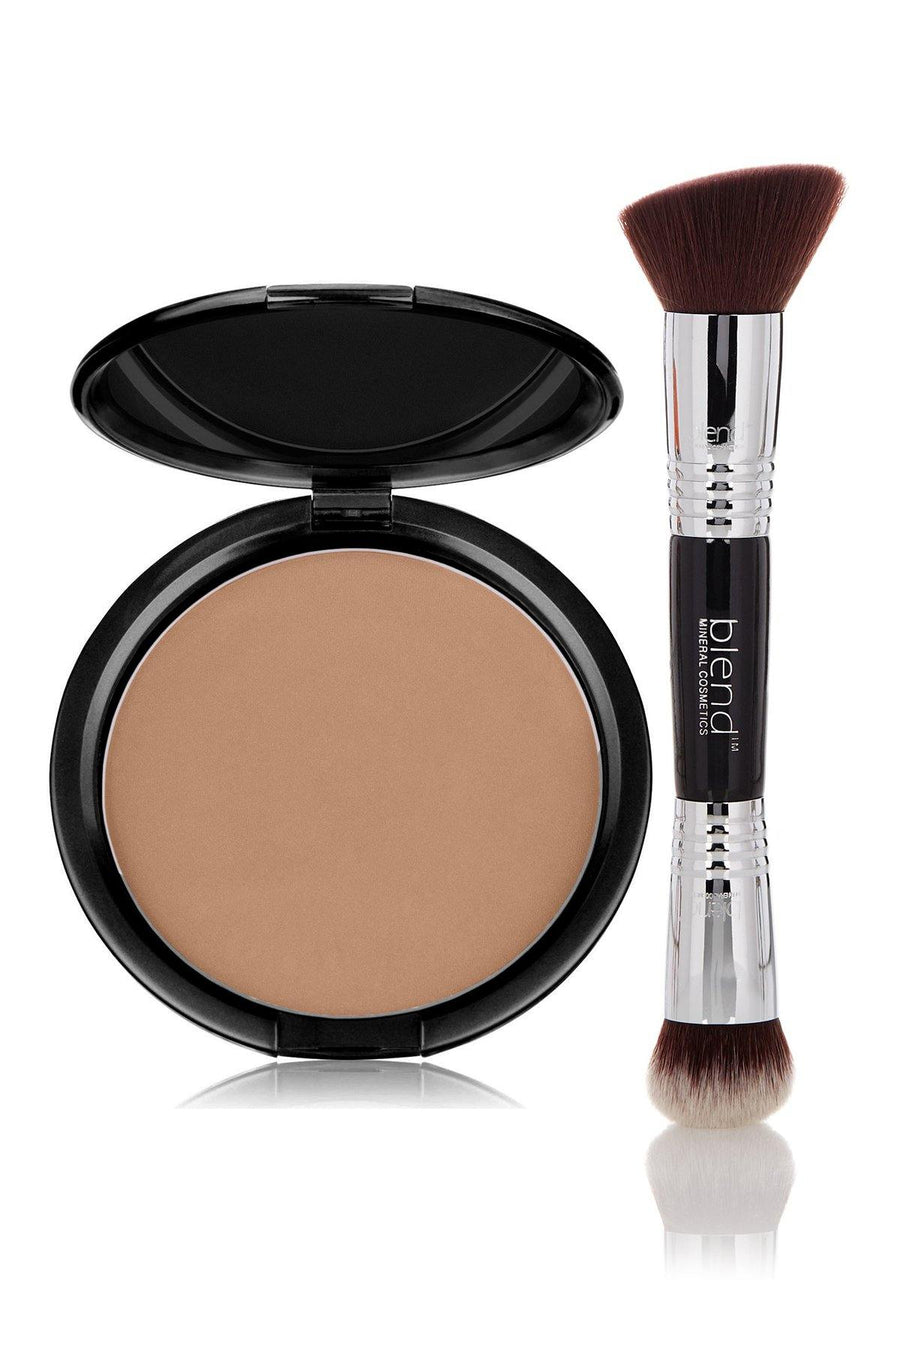 Foundation Brown Tone Light Mineral Pressed Powder & Brush - Blend Mineral Cosmetics